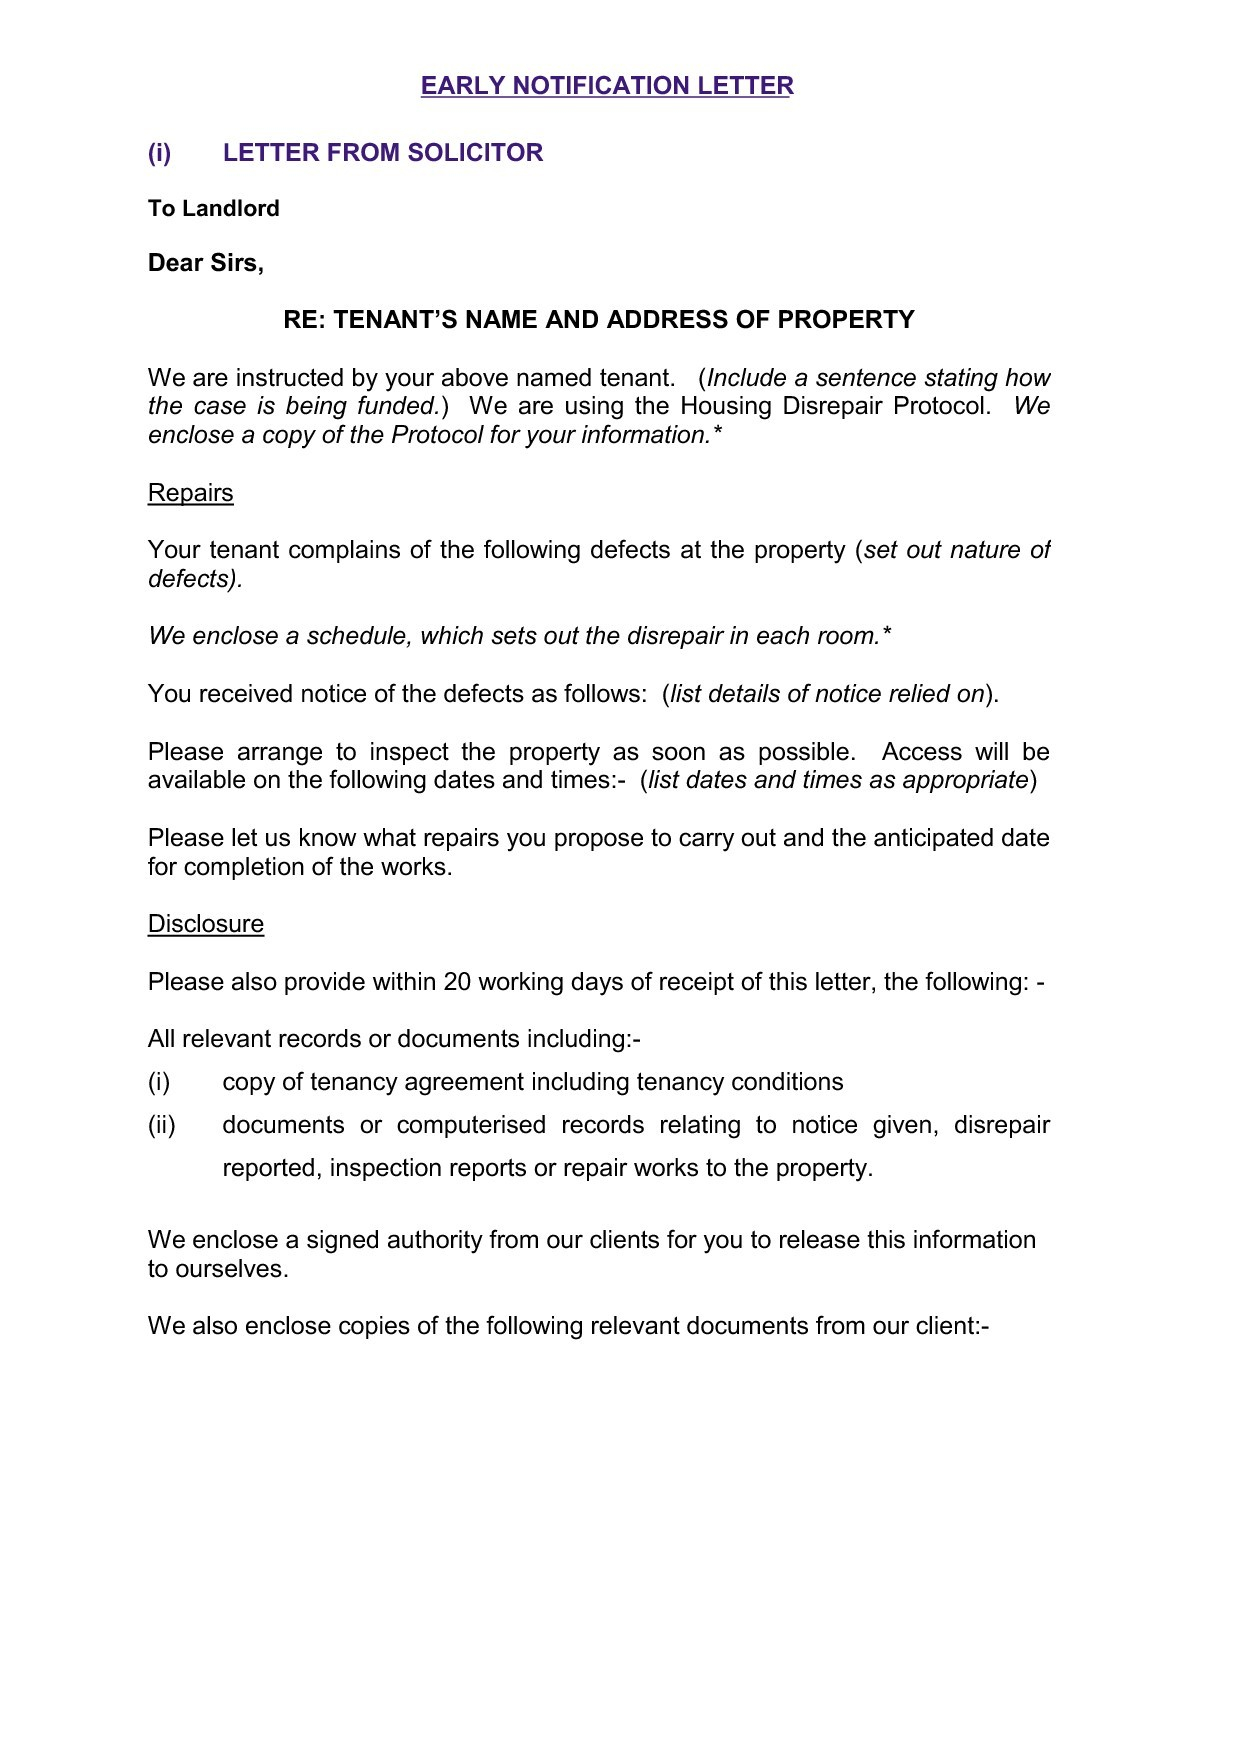 Routine Inspection Letter to Tenant Template - Property Inspection Letter to Tenant Uk Archives New Property